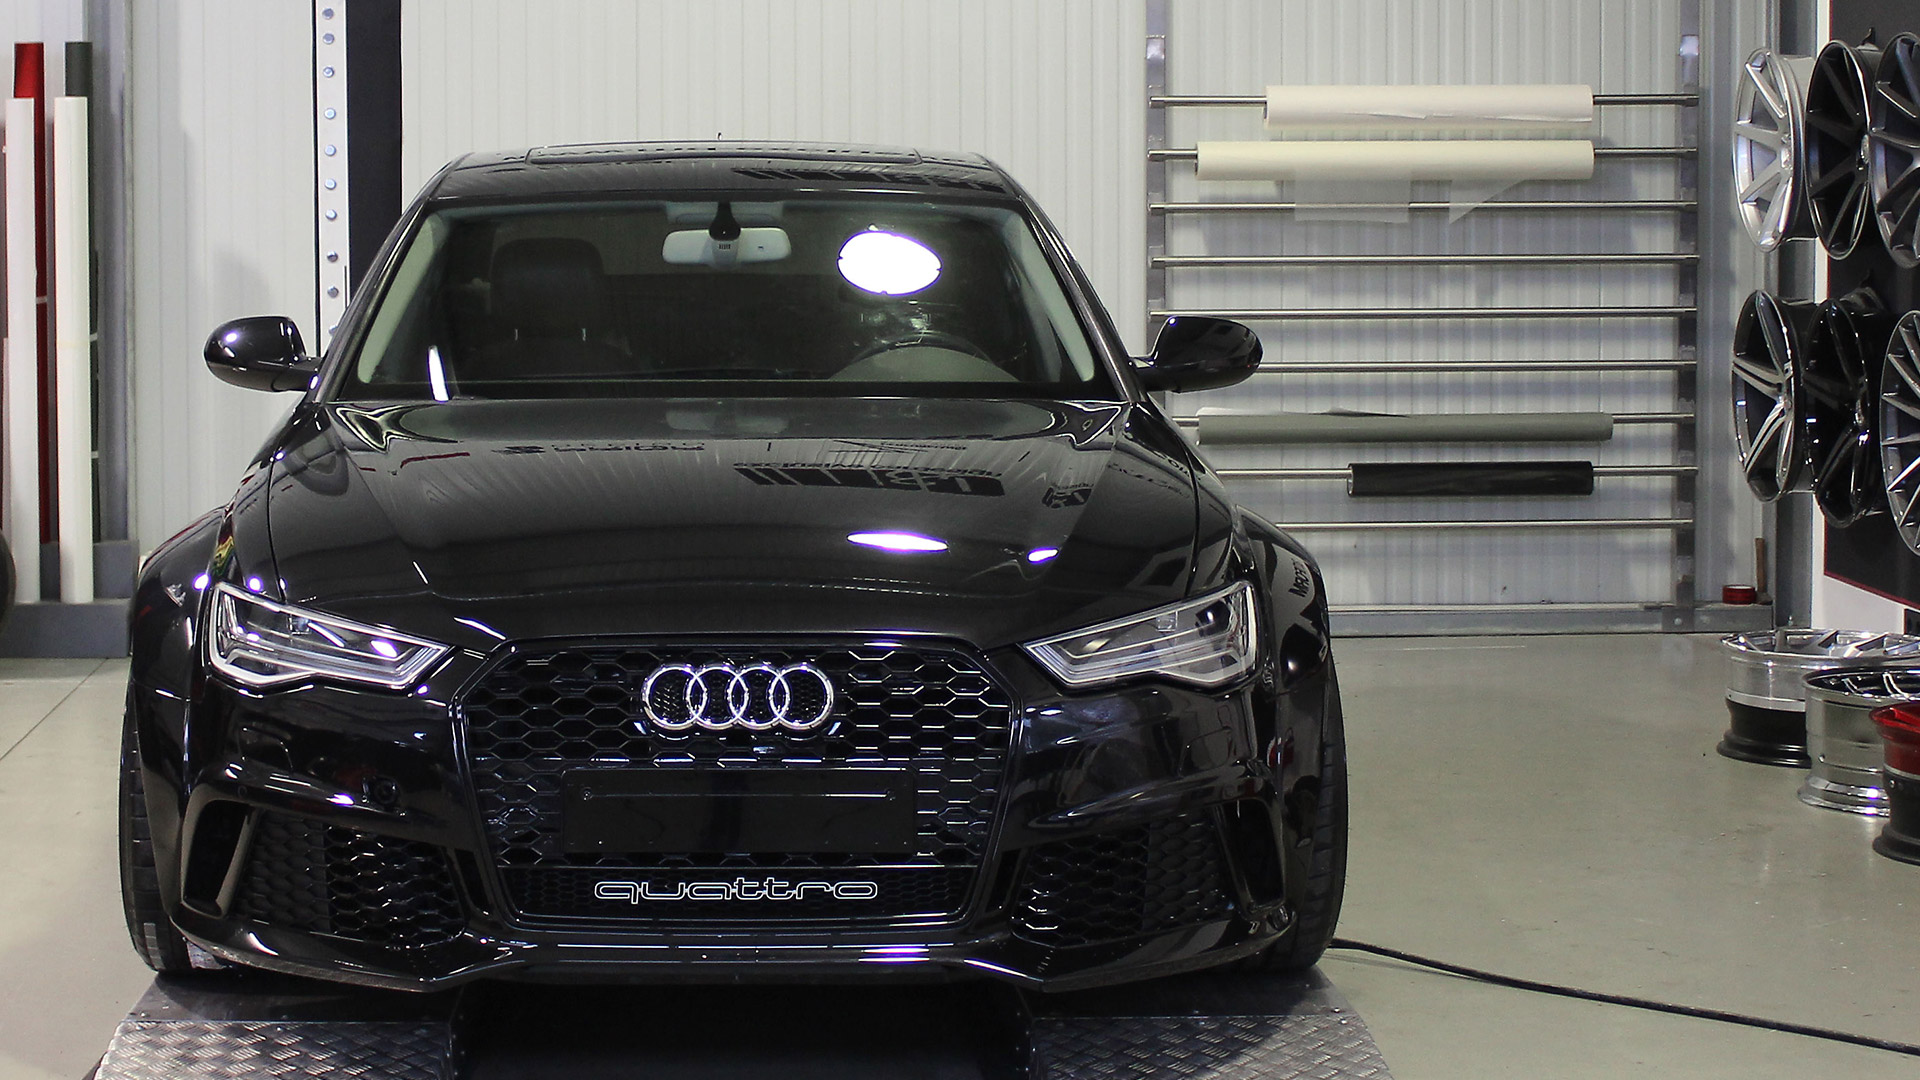 Audi A6 C7 Limousine Tuning All Cars Sport